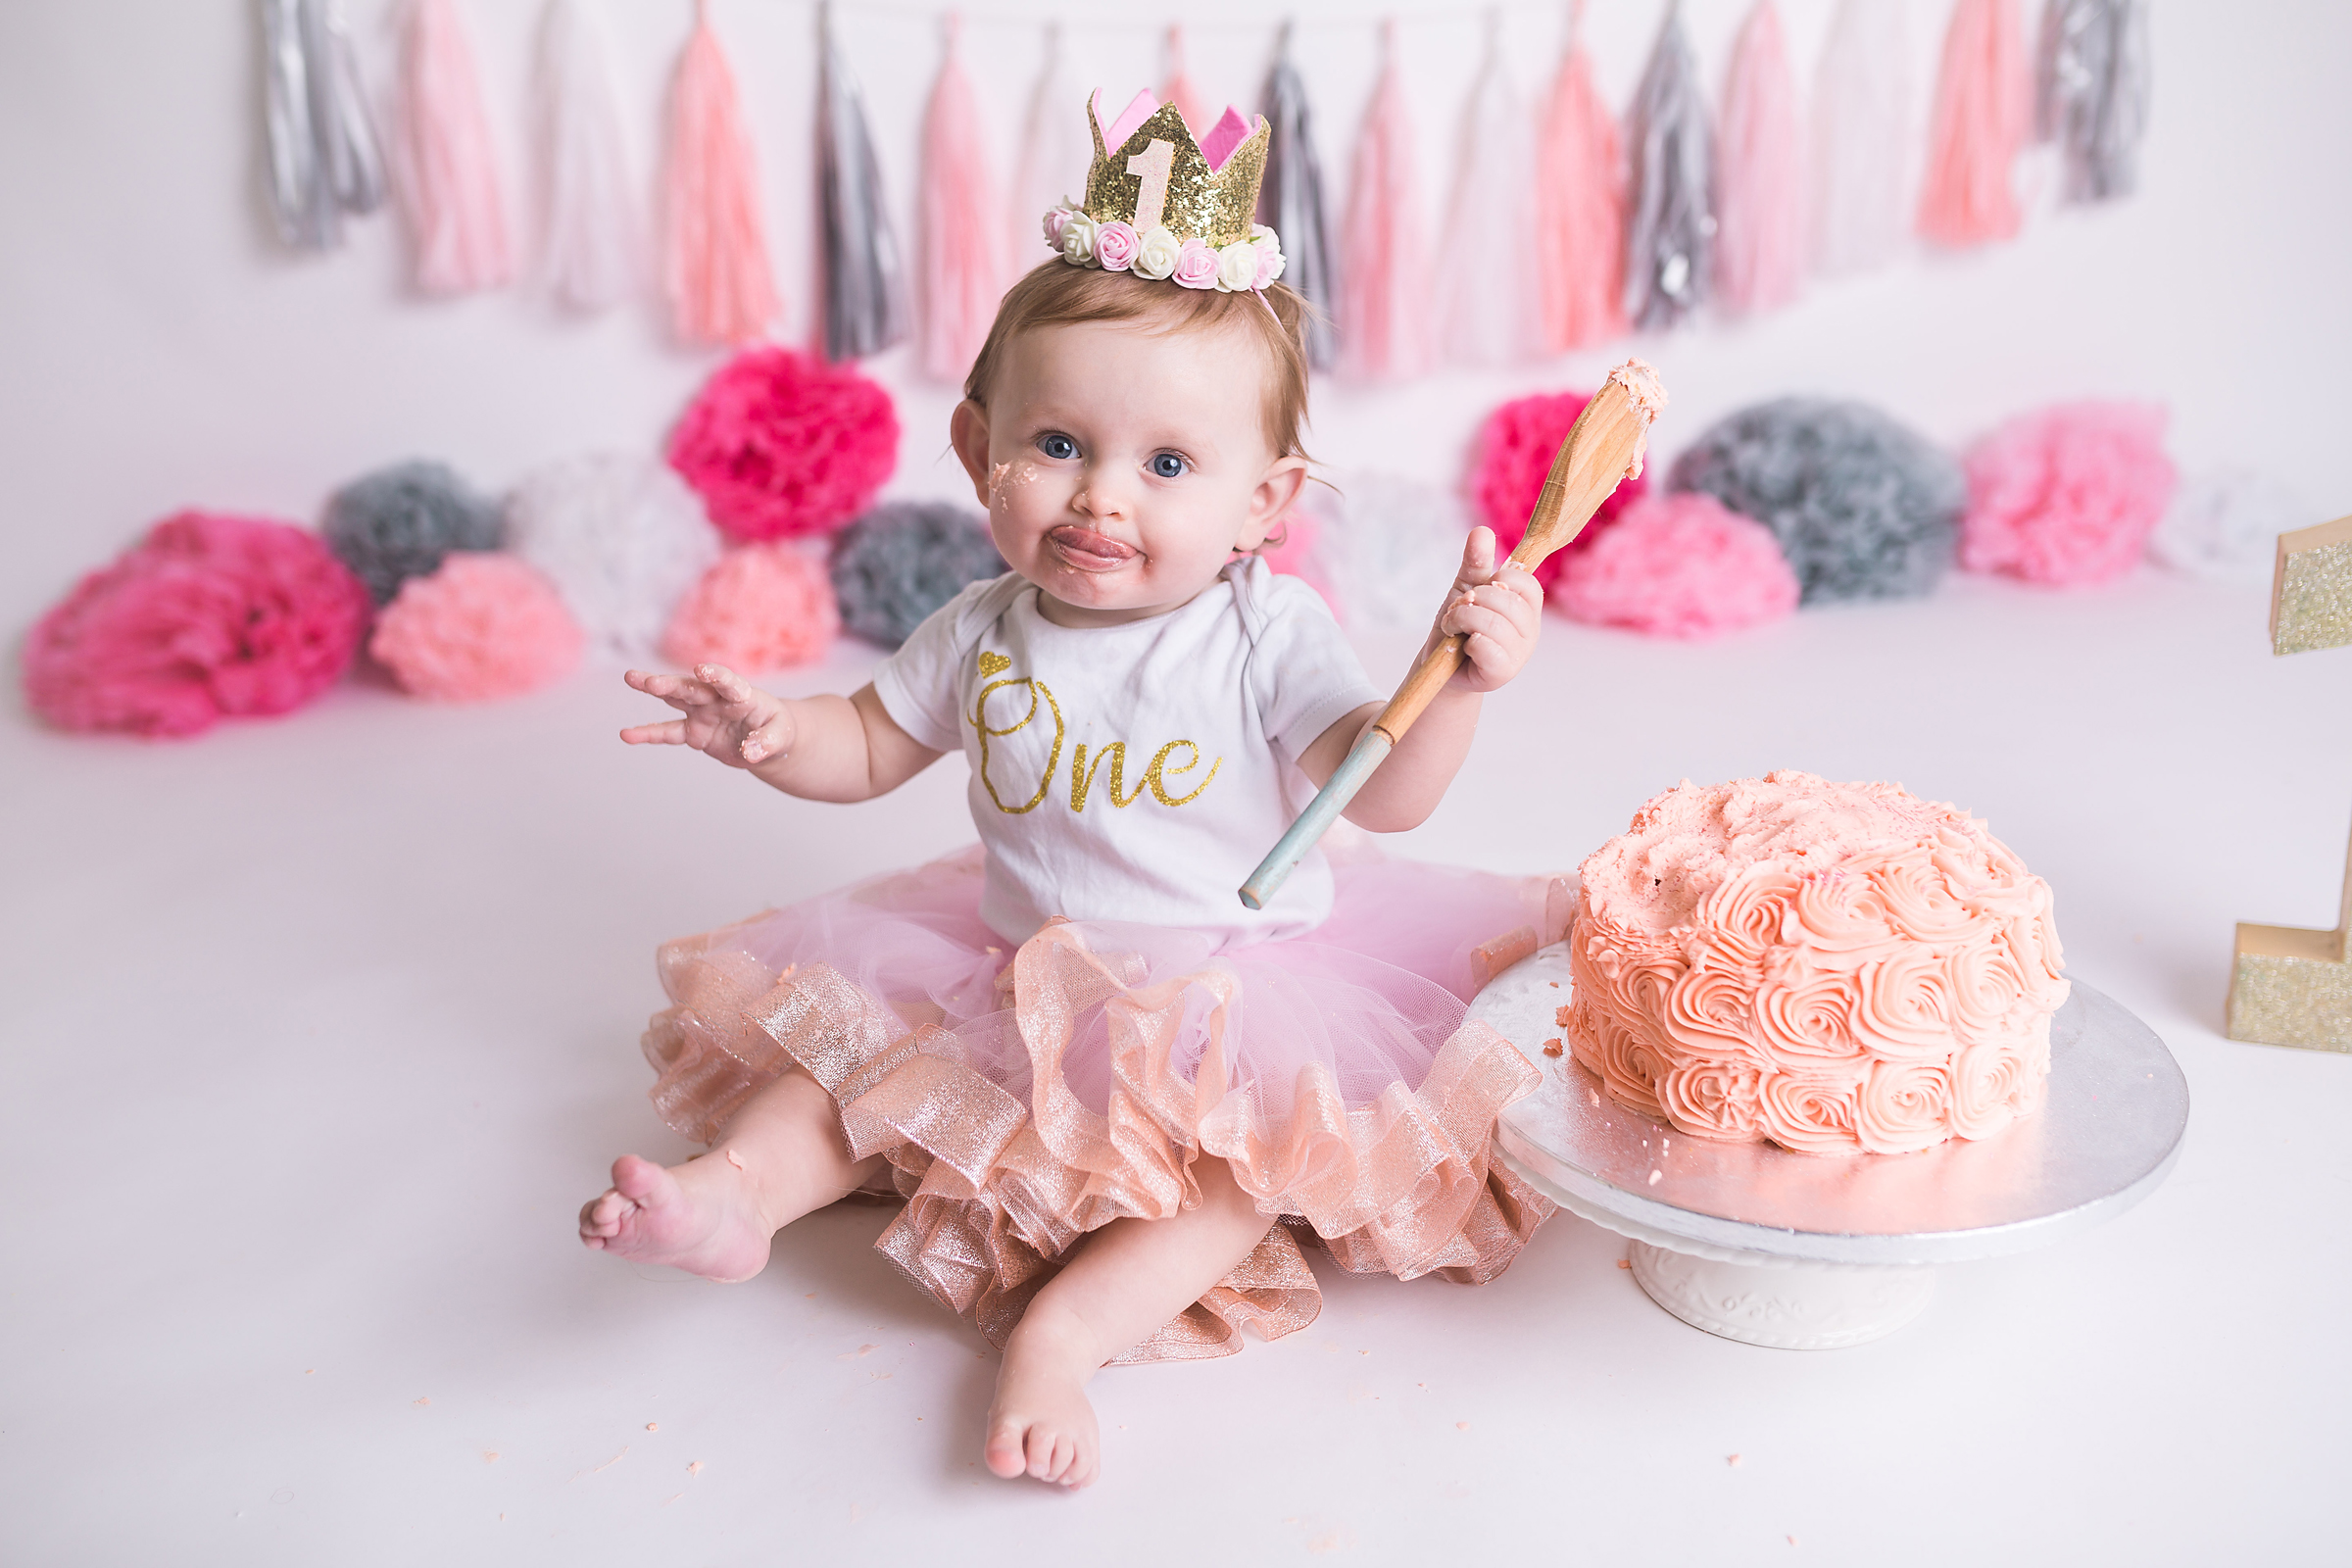 Liverpool Cake Smash baby Photo shoot